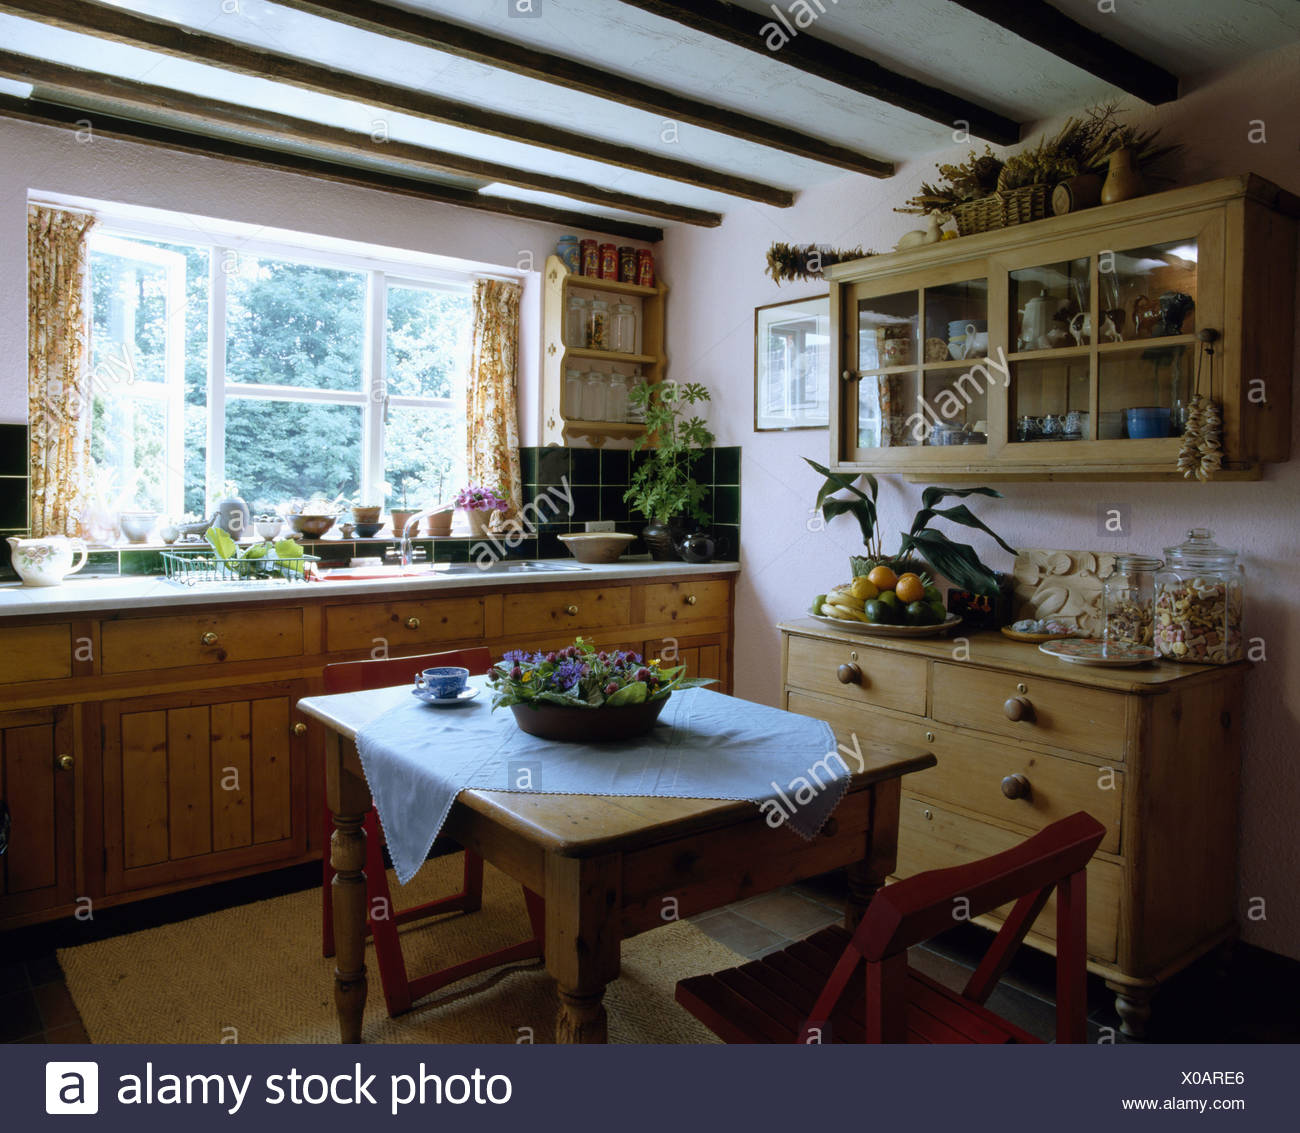 Small Country Kitchens Domestic Stock Photos & Small